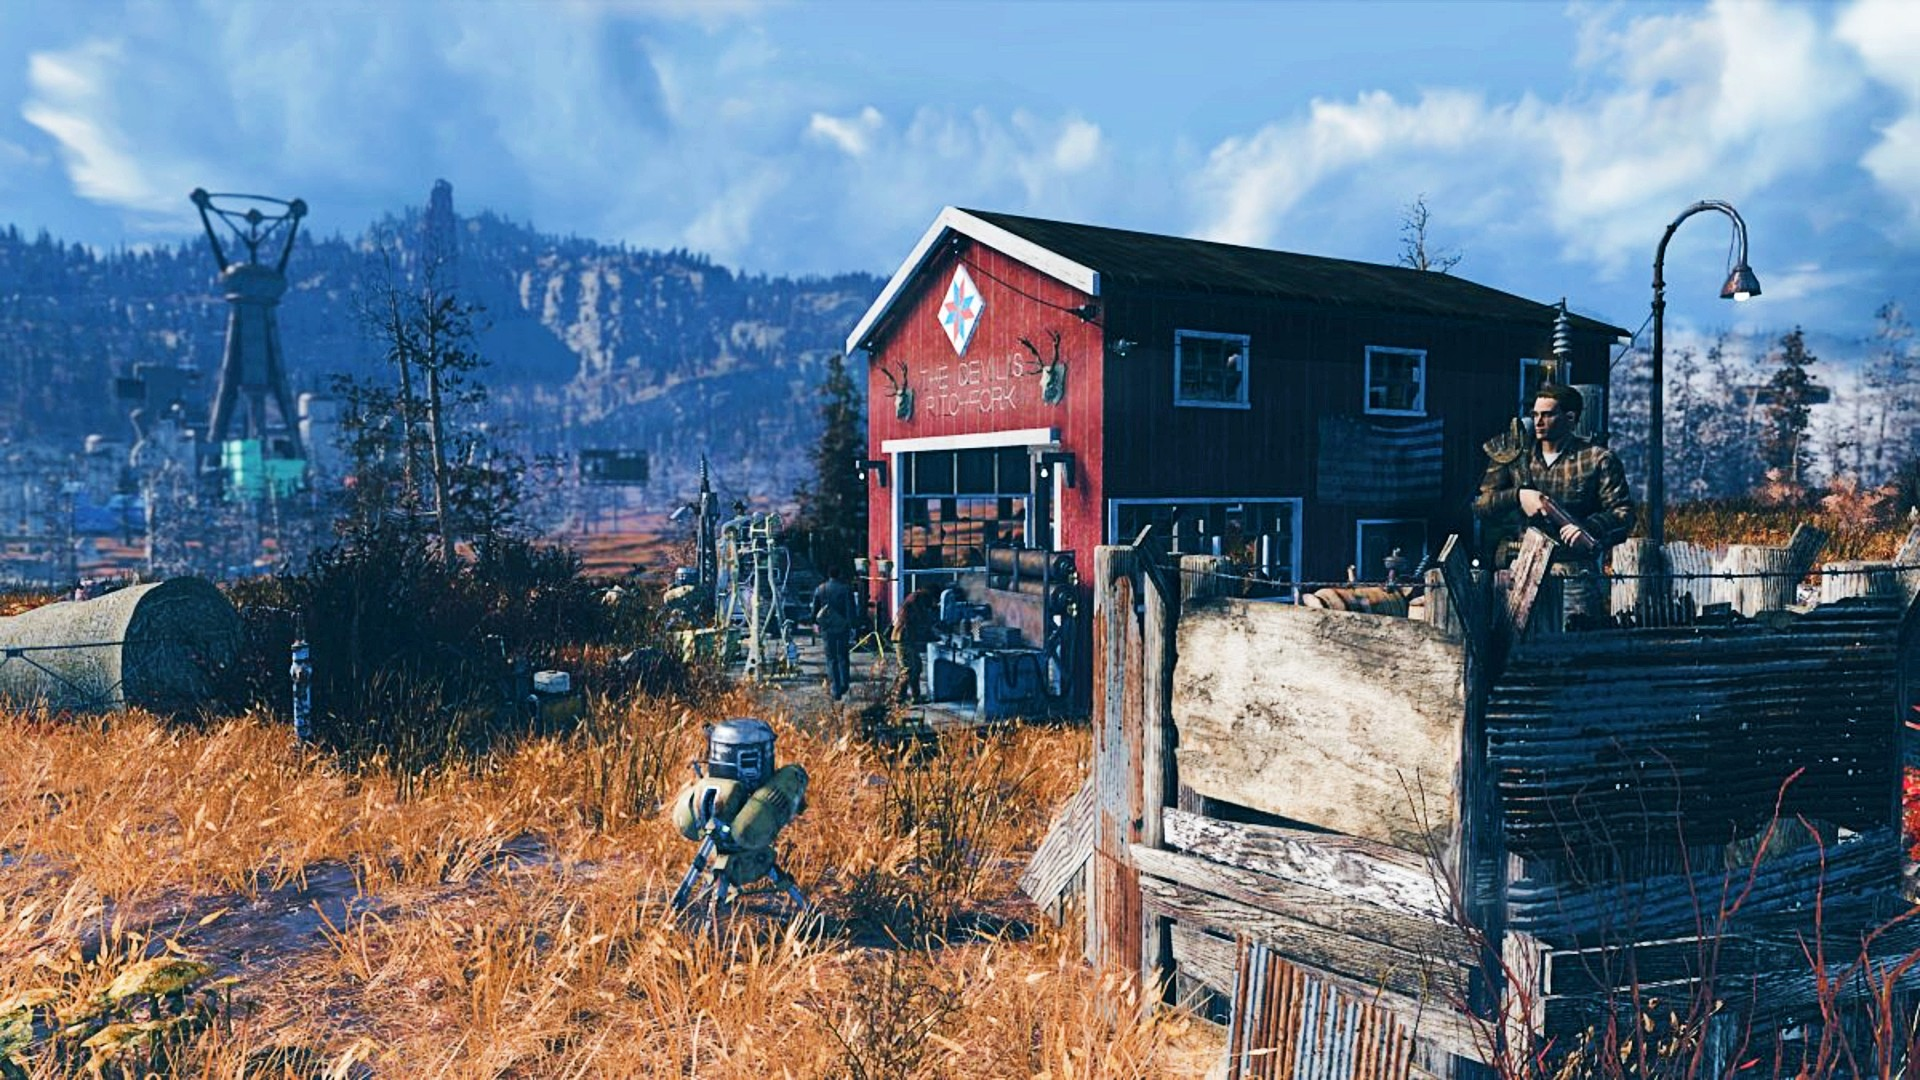 Fallout 76's Locked and Loaded update is out next month